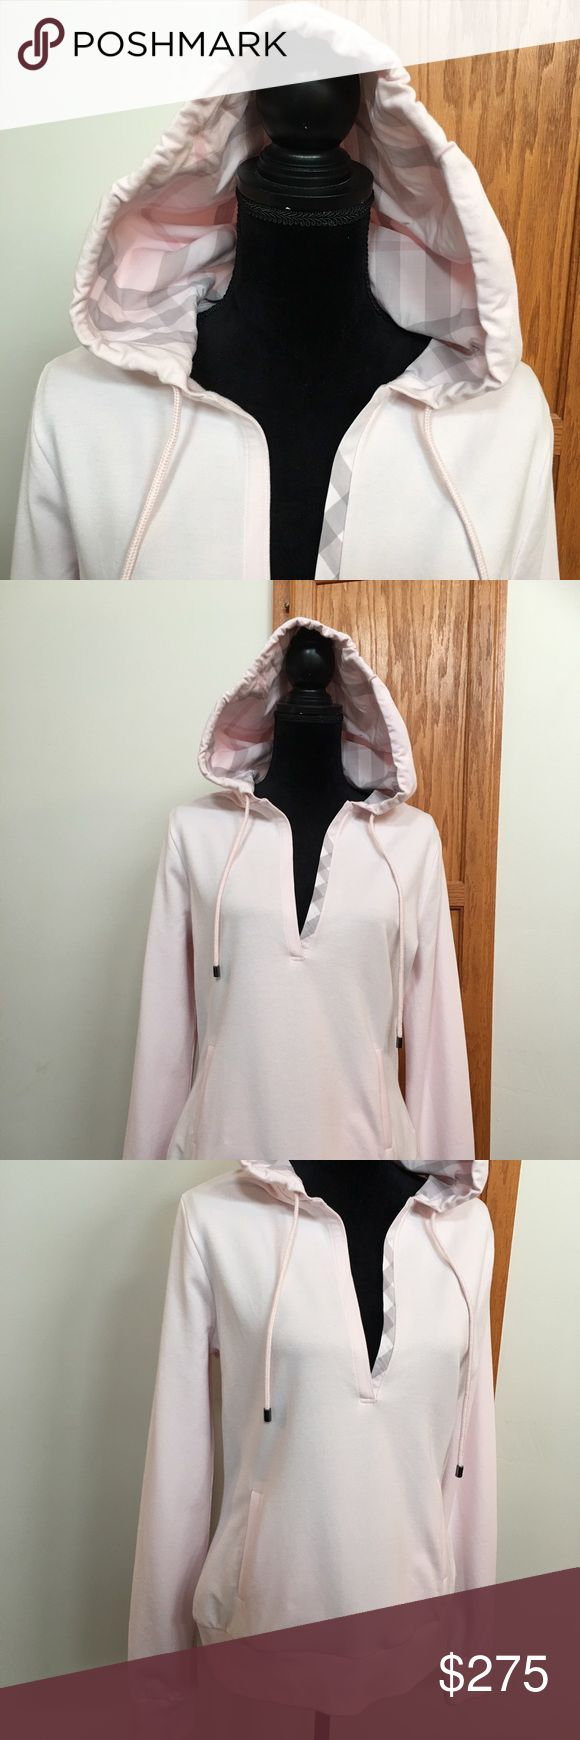 Burberry Brit Hooded Cotton Sweatshirt This is a brand-new Burberry Brit pink, white, and gray hooded sweatshirt. Hood is fully lined in the pink white and gray Burberry plaid. Absolutely gorgeous! V-neck front. This style is retired and no longer made by Burberry. ladies size large. No trades please. Burberry Tops Sweatshirts & Hoodies